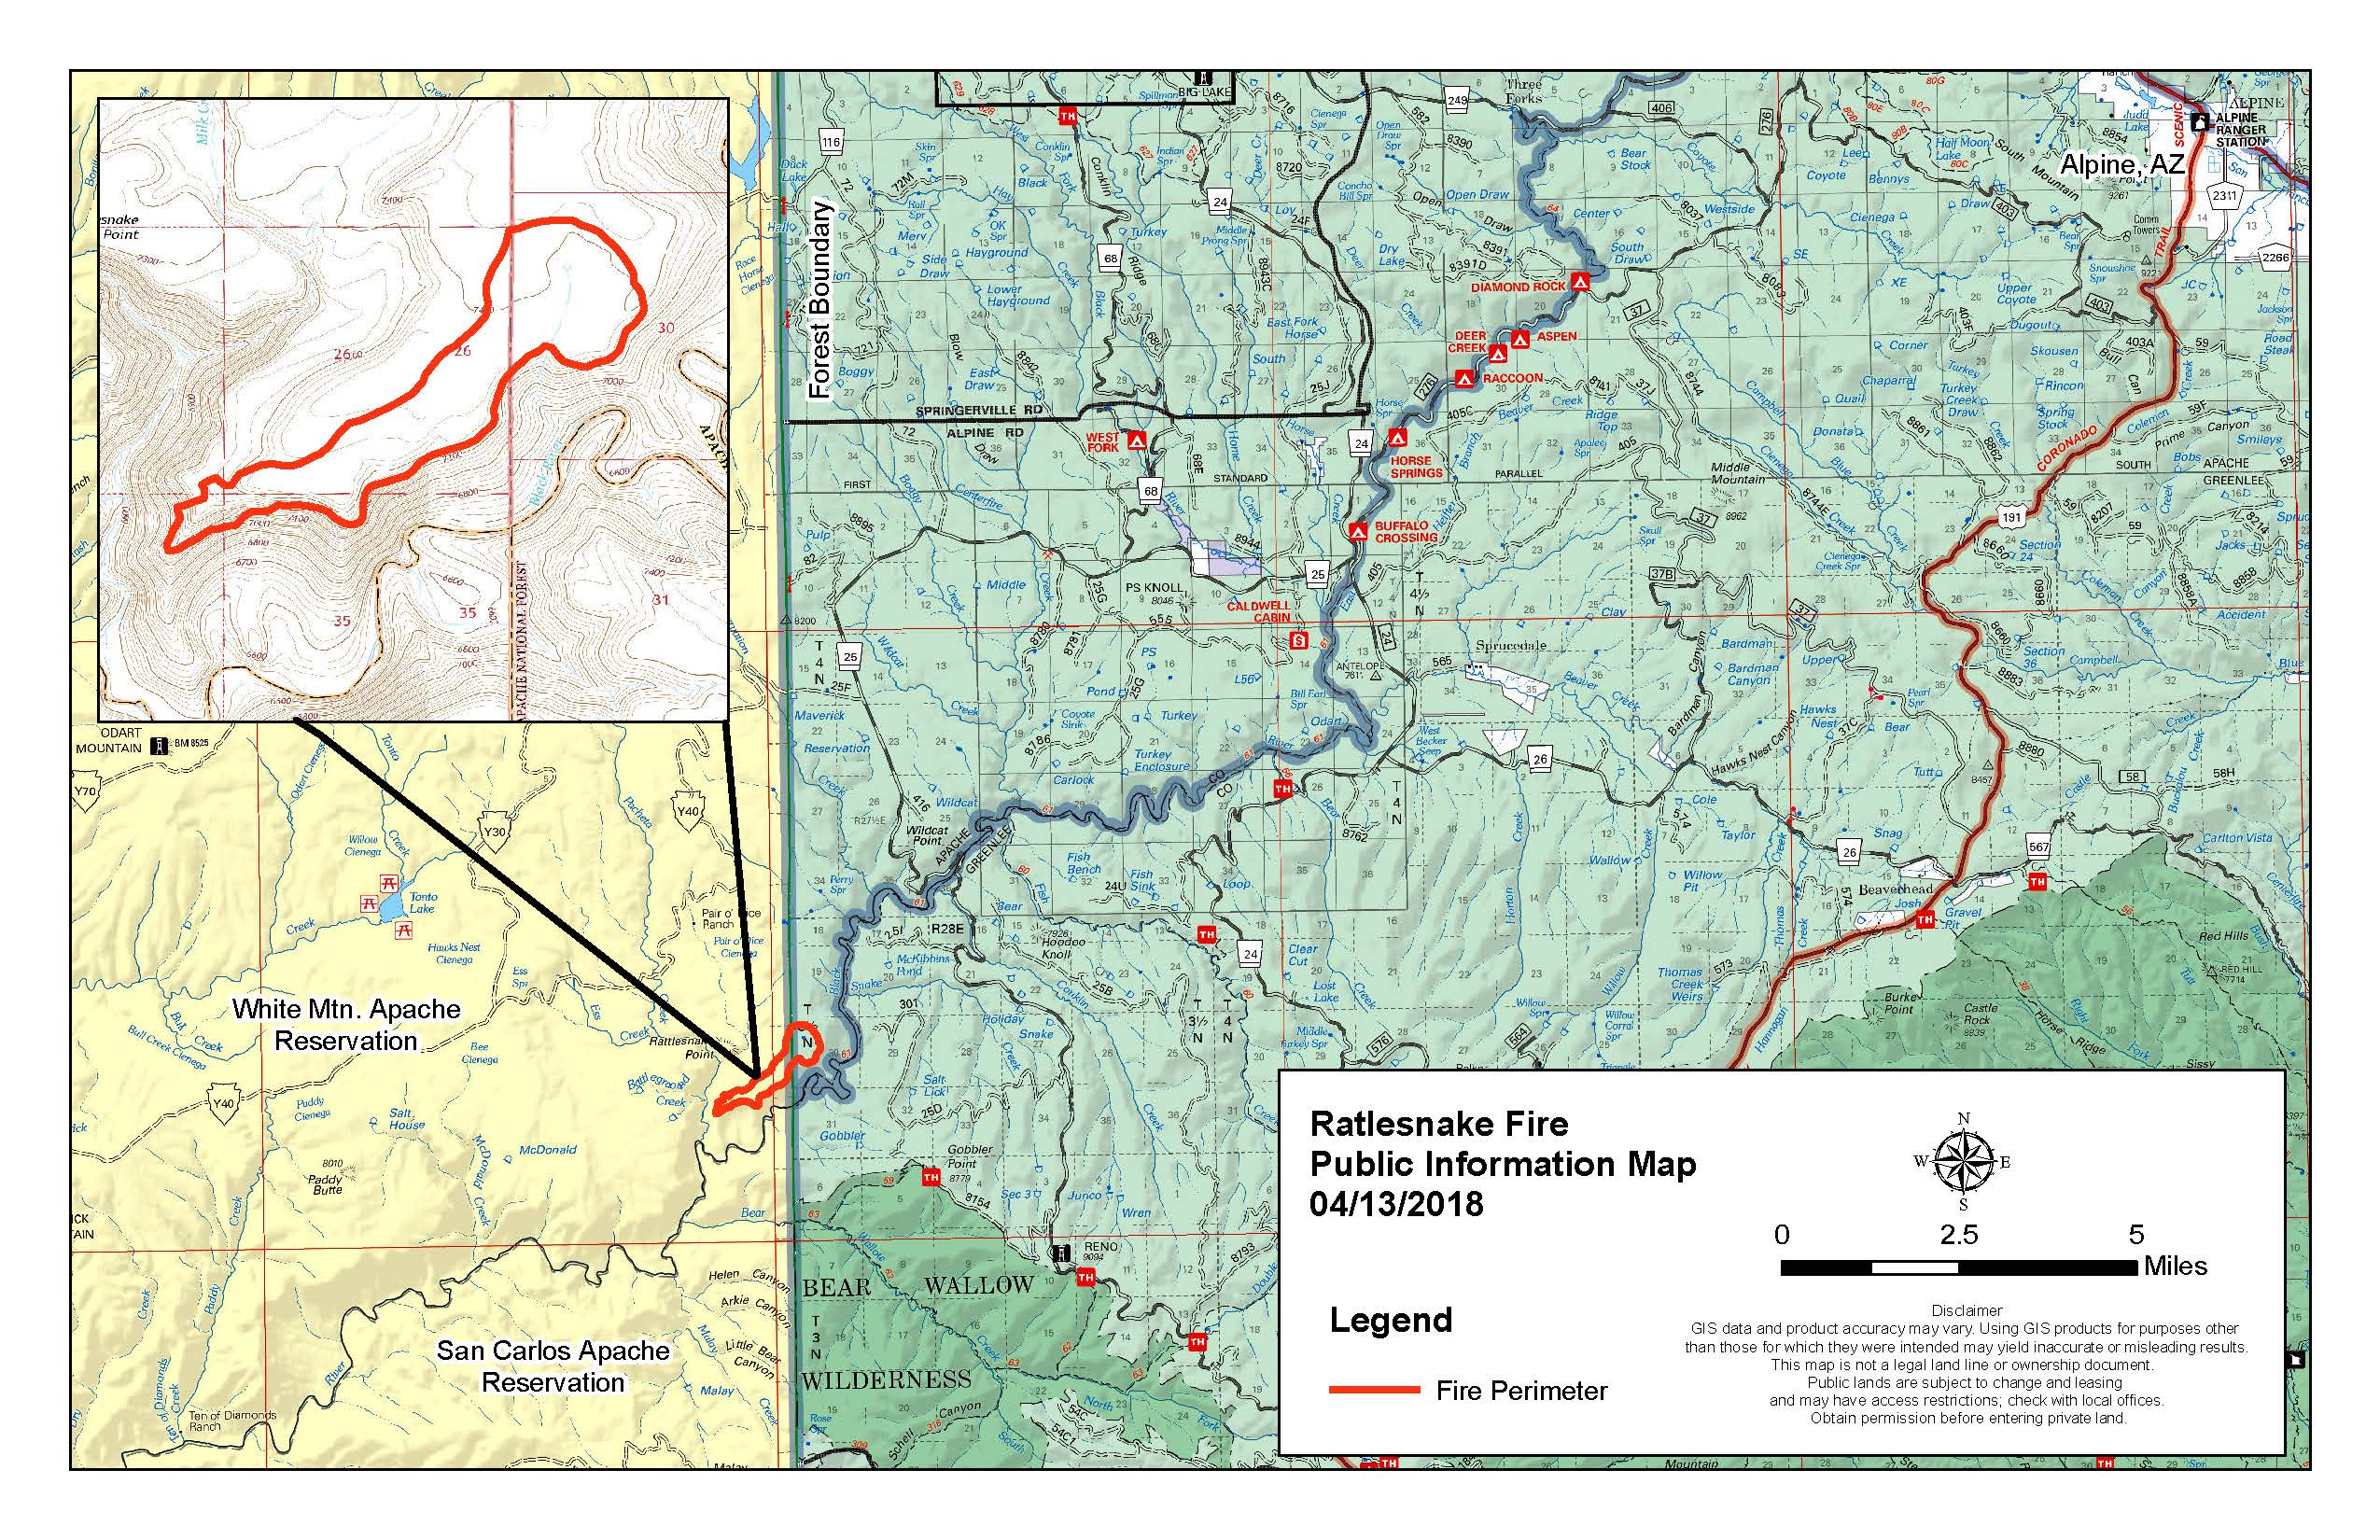 Rattlesnake Fire Public Information Map 4_13_18